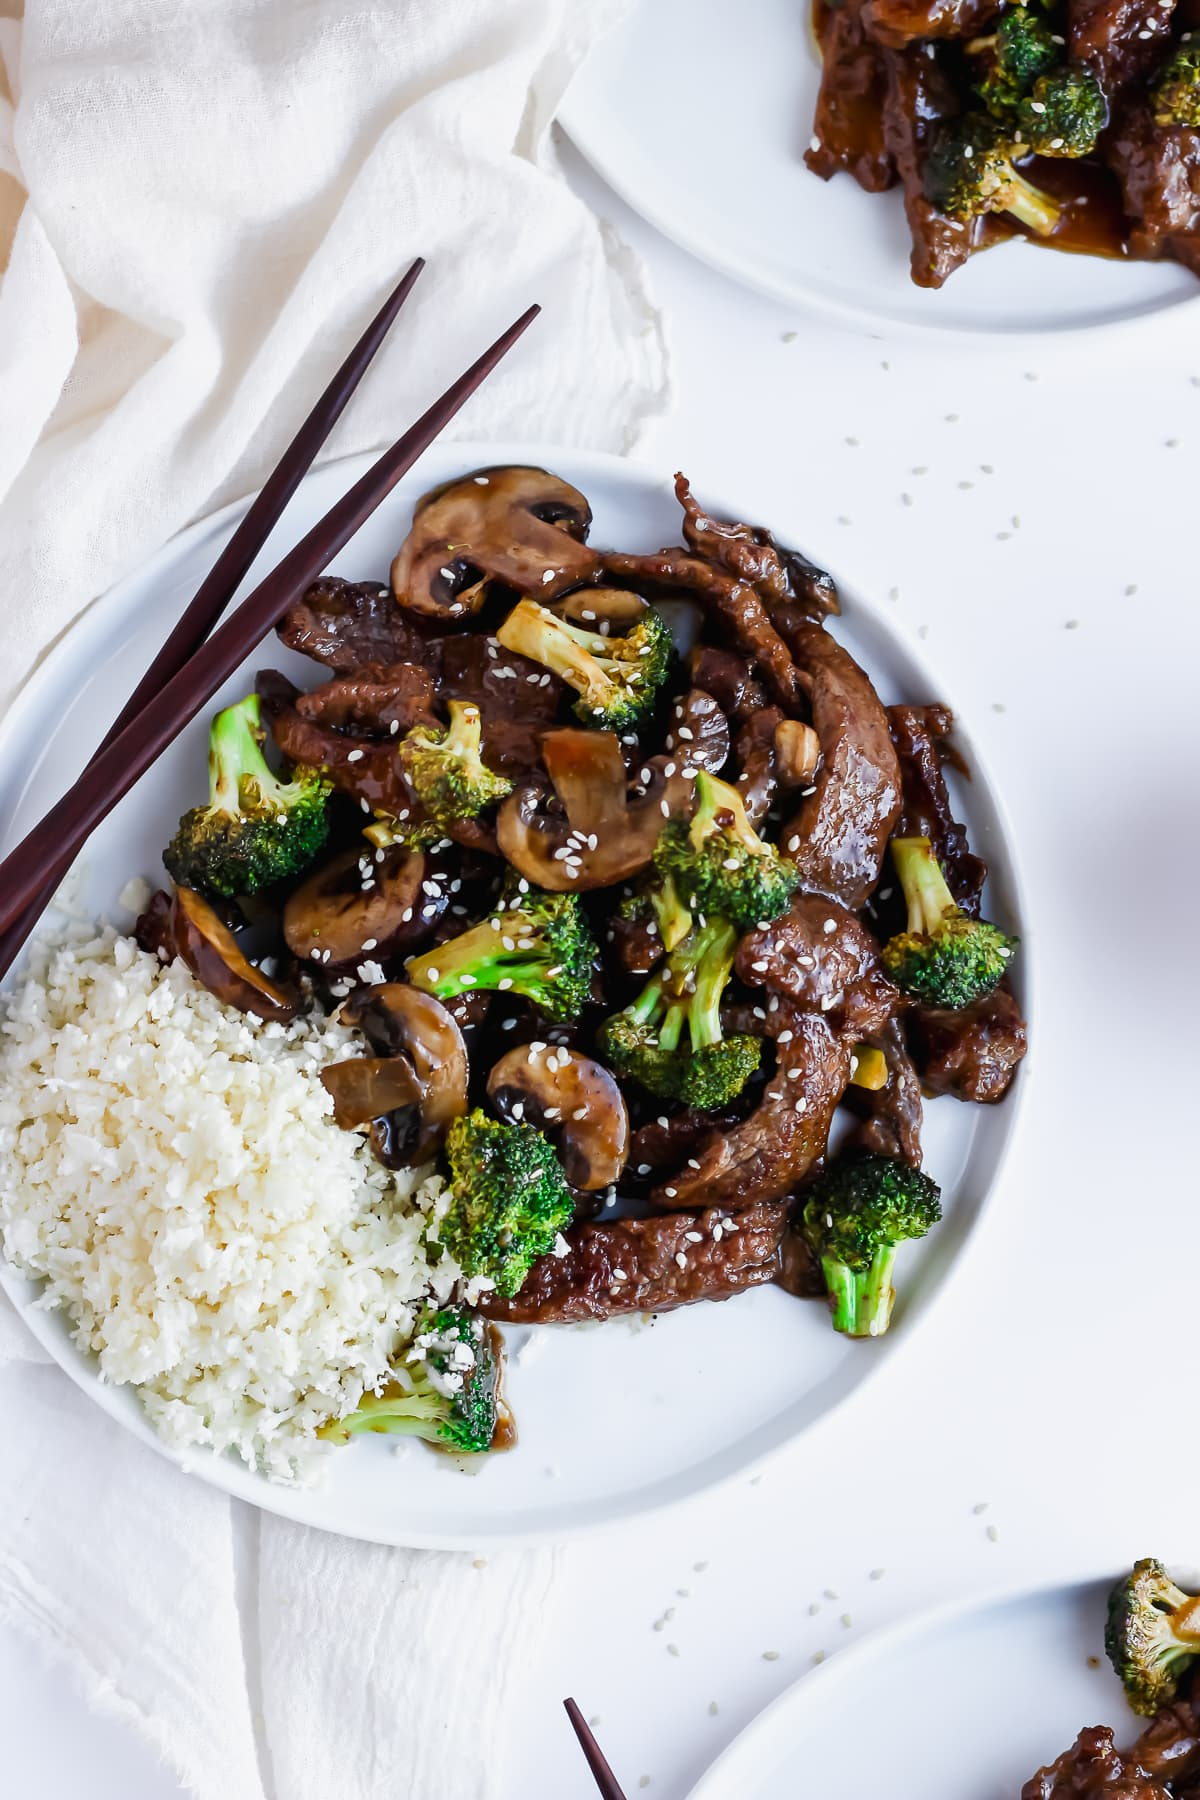 Beef and Broccoli Stir-Fry - Whole30 beef and broccoli is a savory and delicious dinner! #whole30